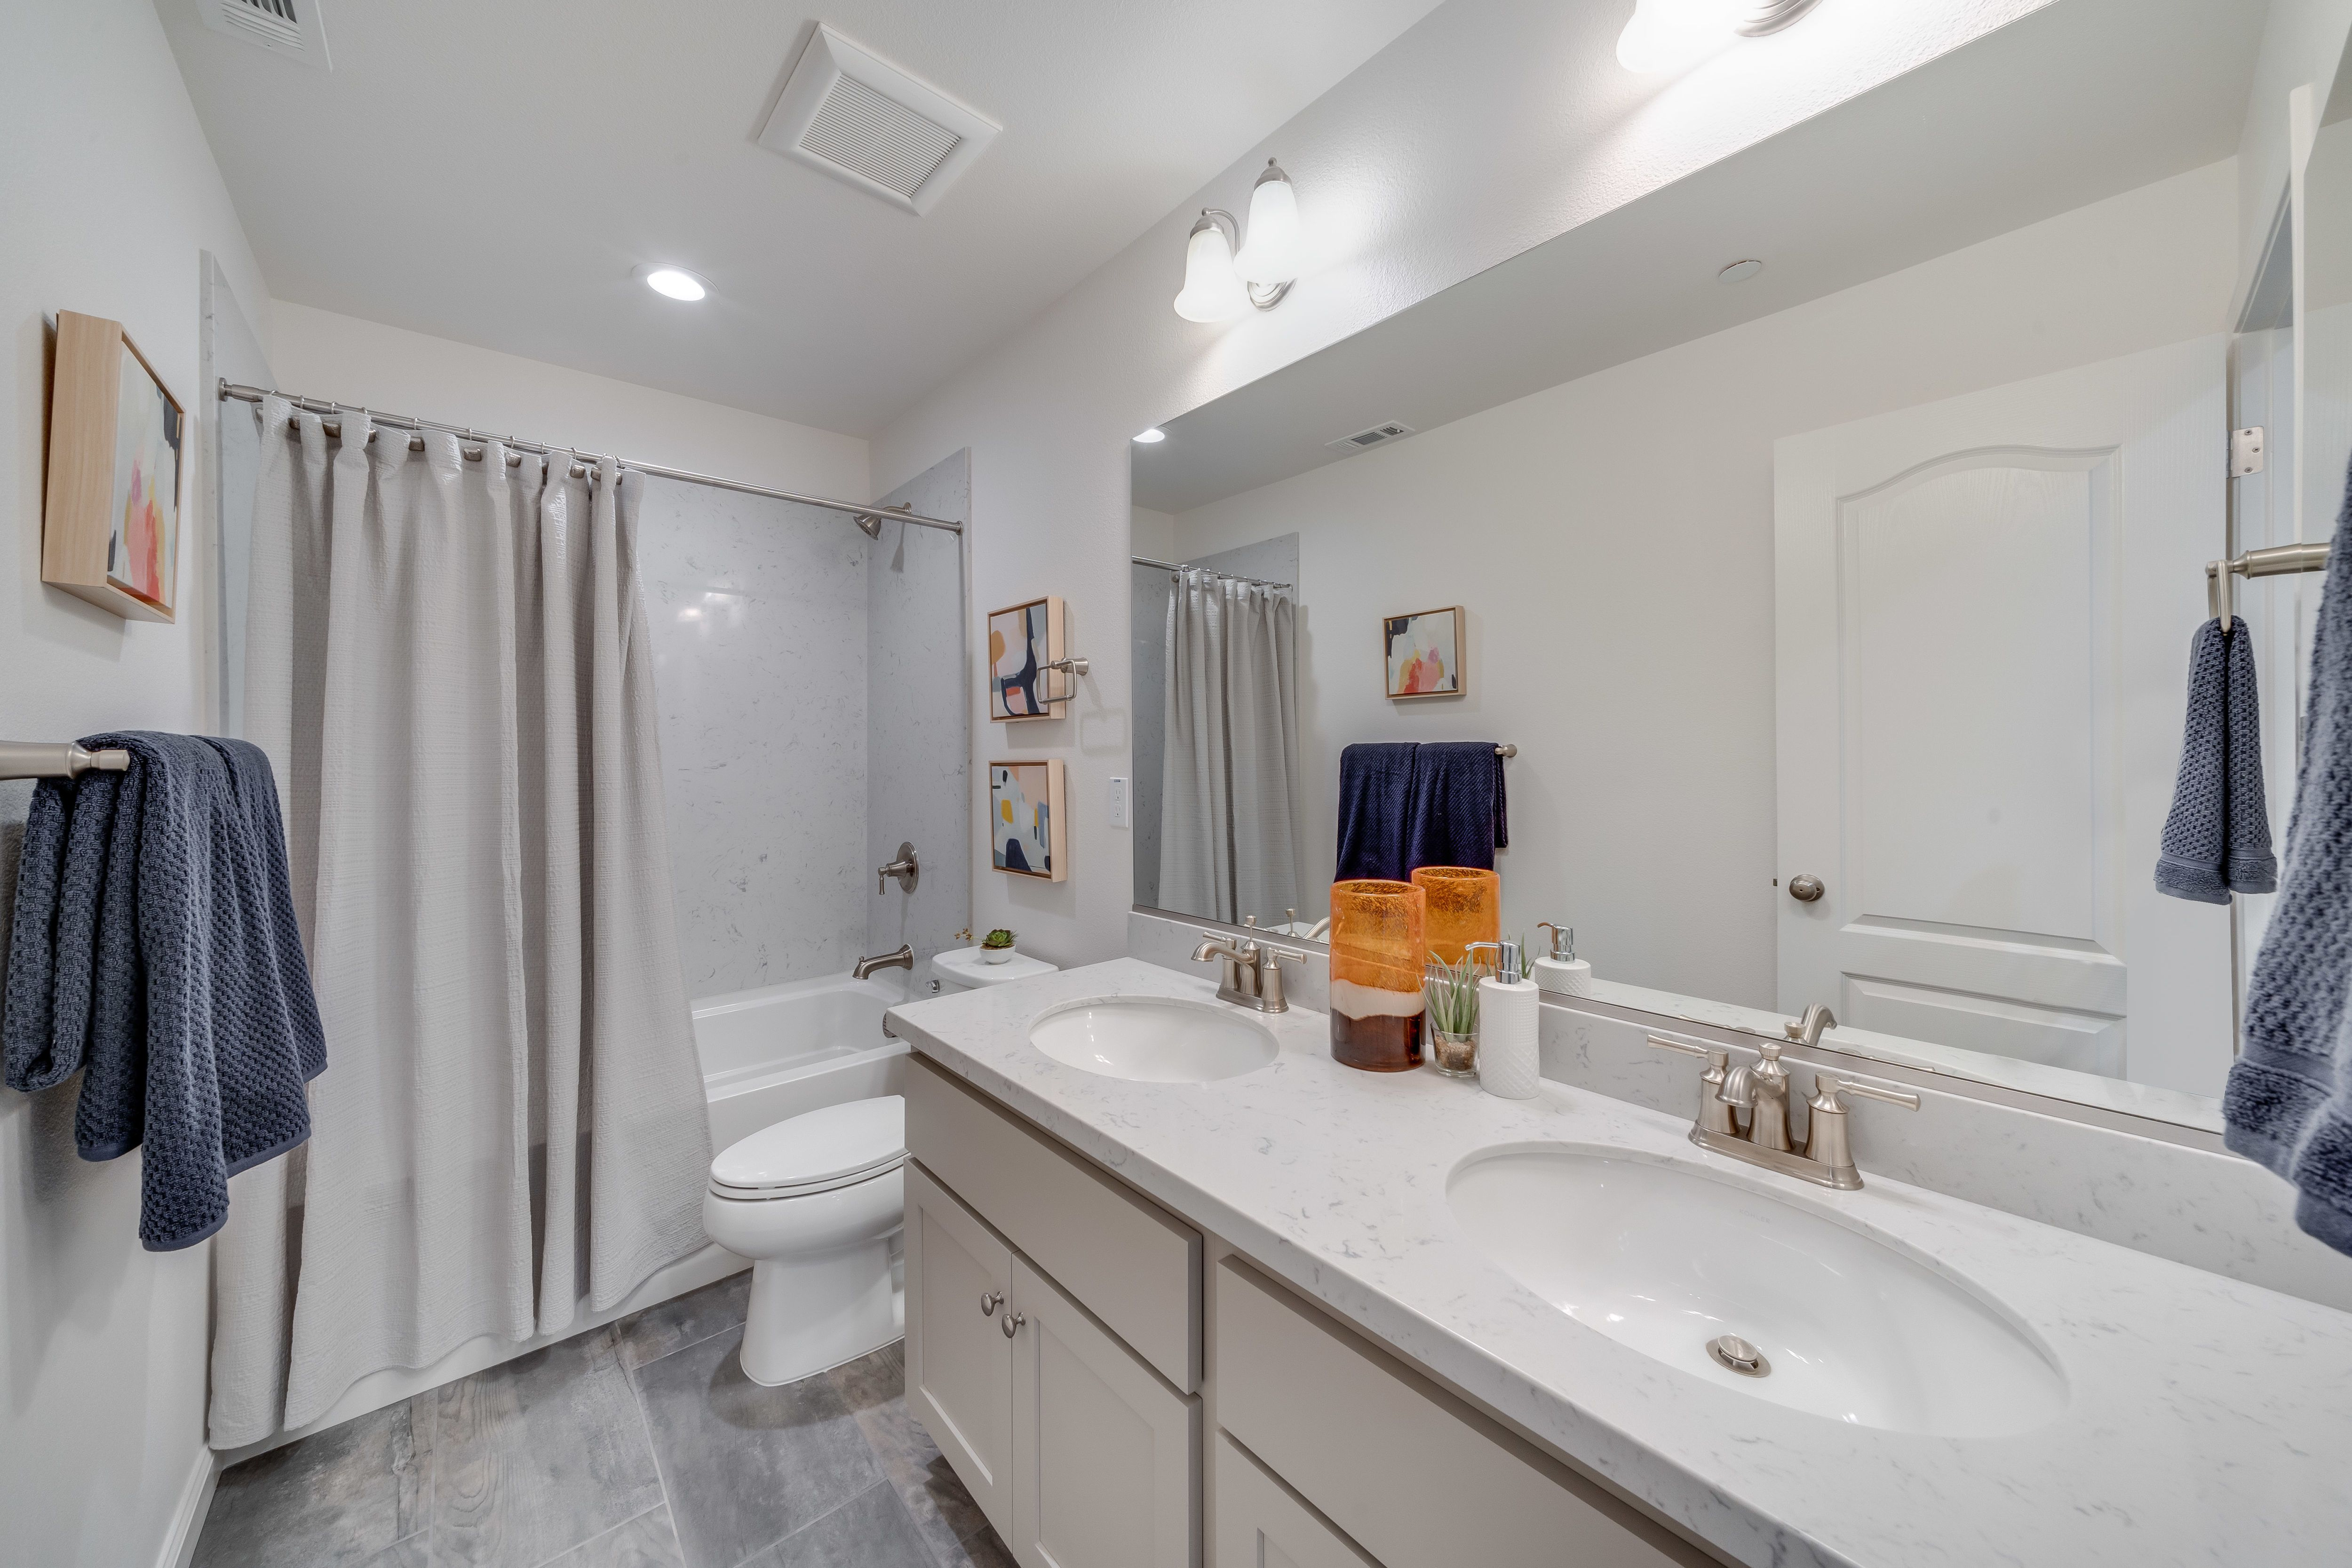 Bathroom featured in the Plan 4D By The Gardens in Santa Rosa, CA